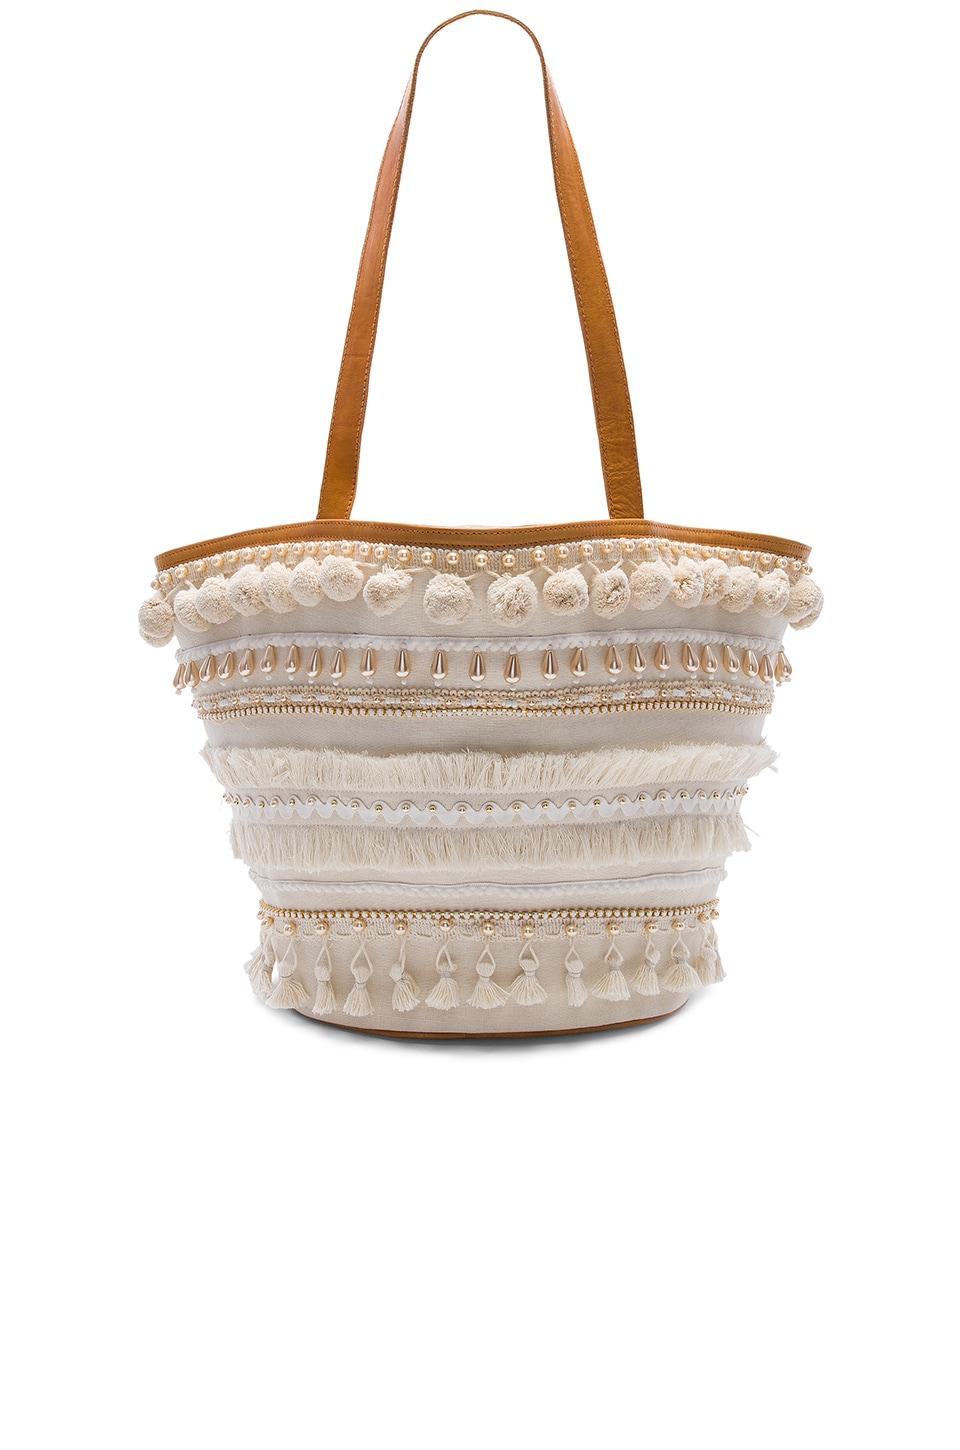 Mystique Pom Pom Tote in White